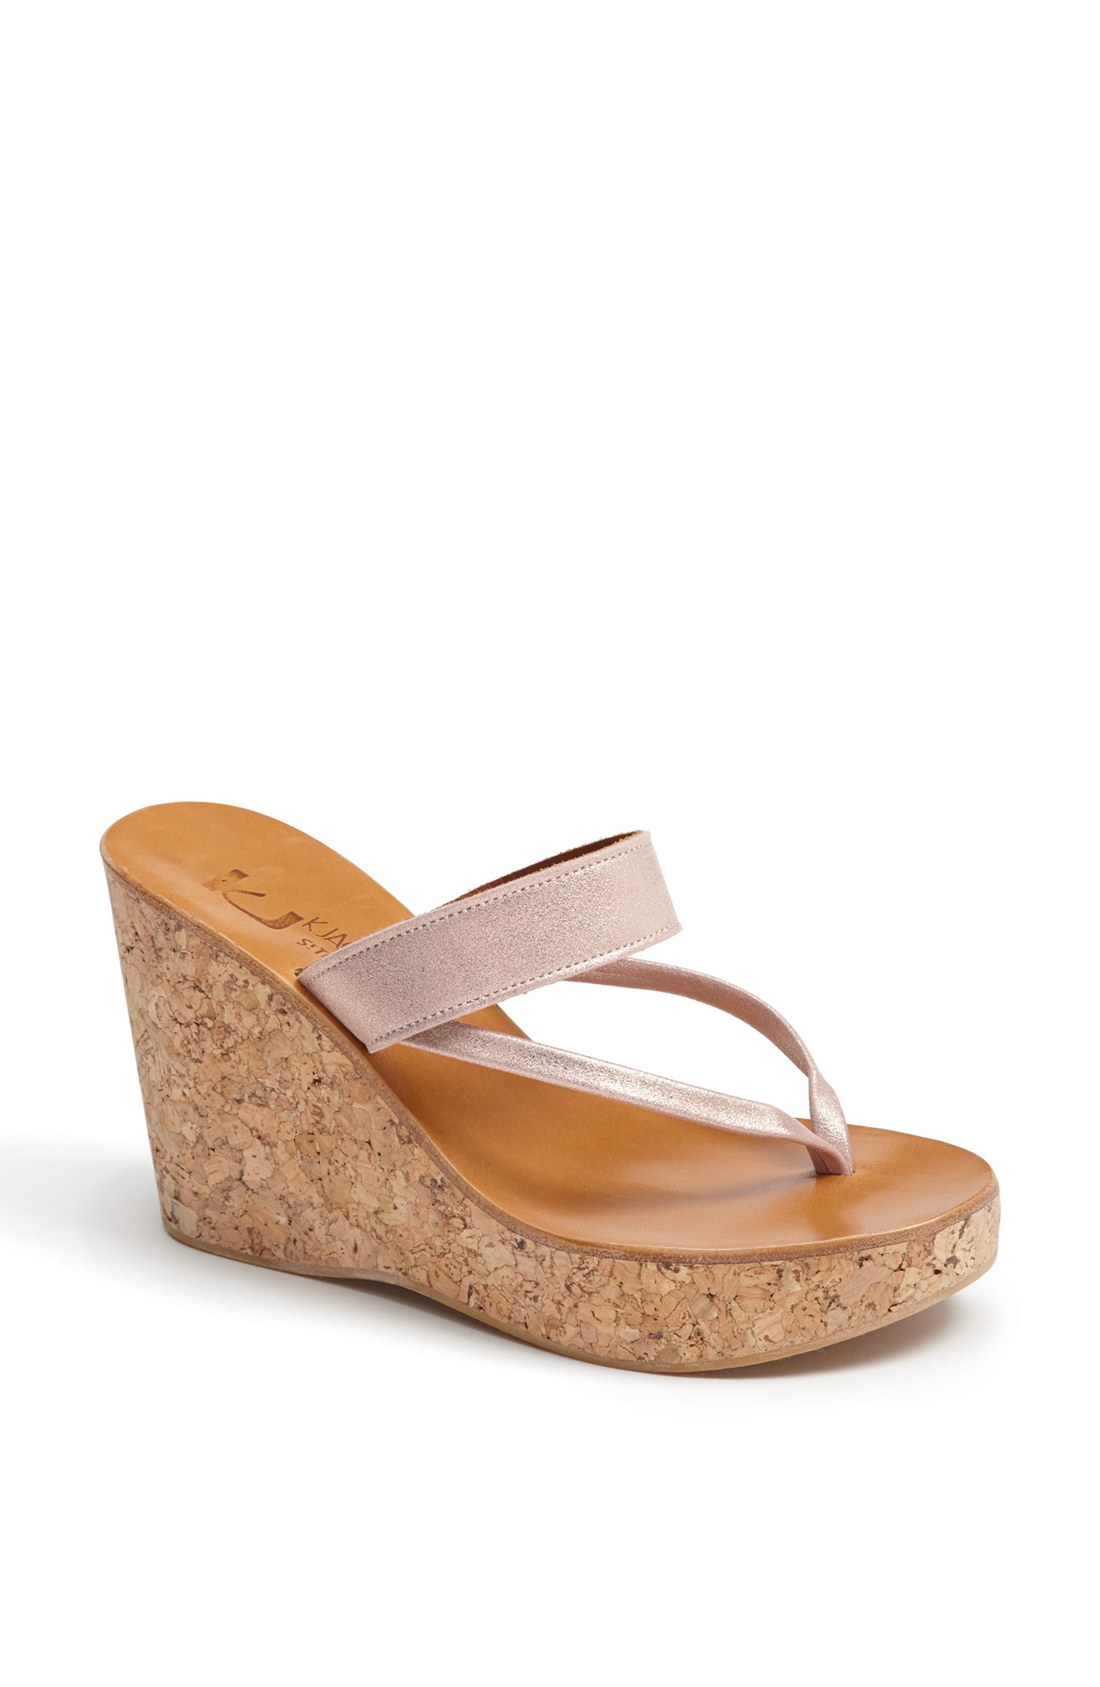 K Jacques St Tropez Saturnine Cork Wedge Sandal In